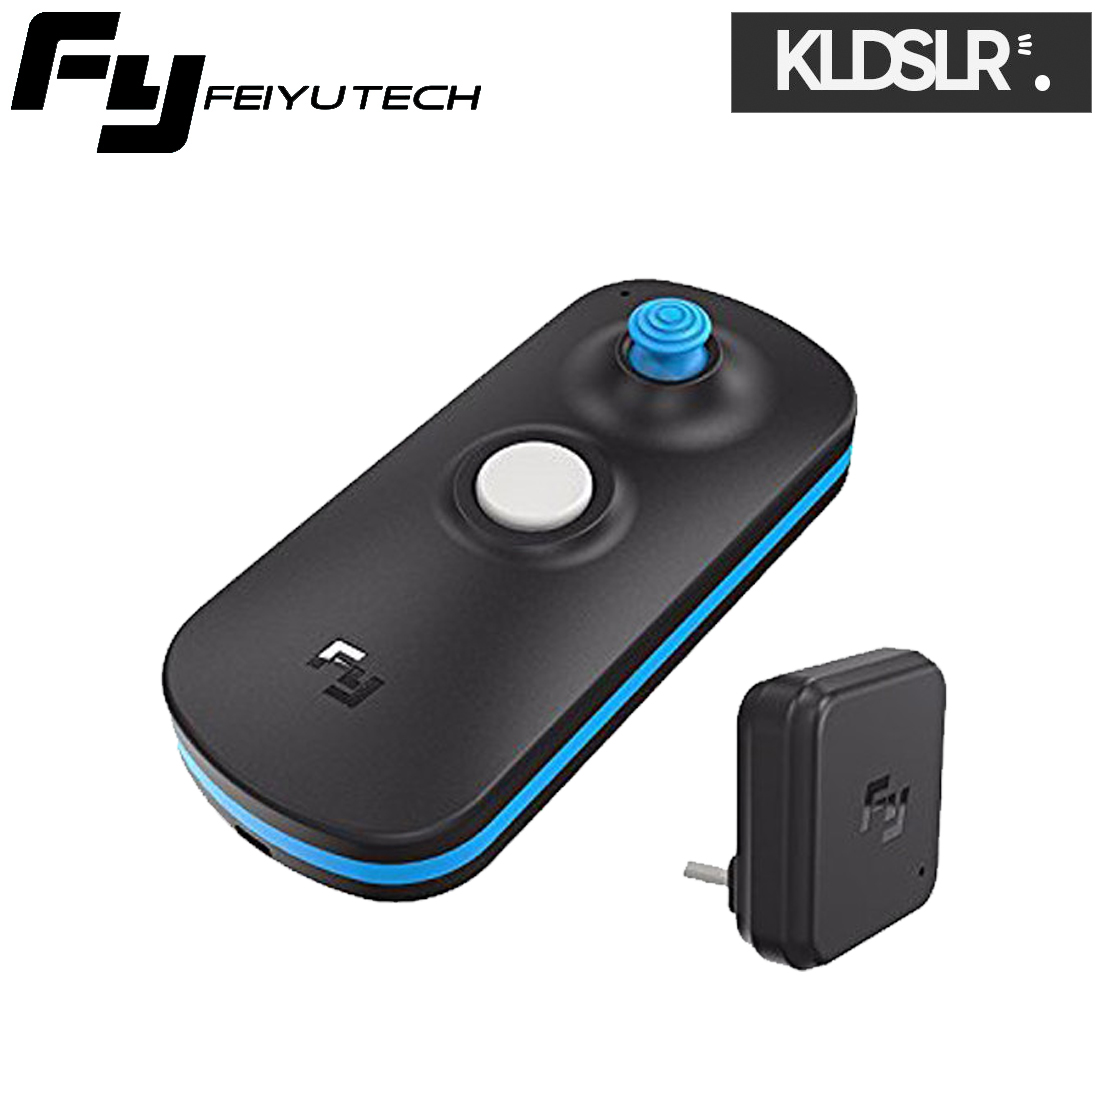 Feiyu 24g Wireless Remote Control With Mini Receiver For Mg Spg 3 Axis Handheld Steady Gimbal Smartphones Extra Battrey G4 Series Qd G4s Smartphone Pro Iphone